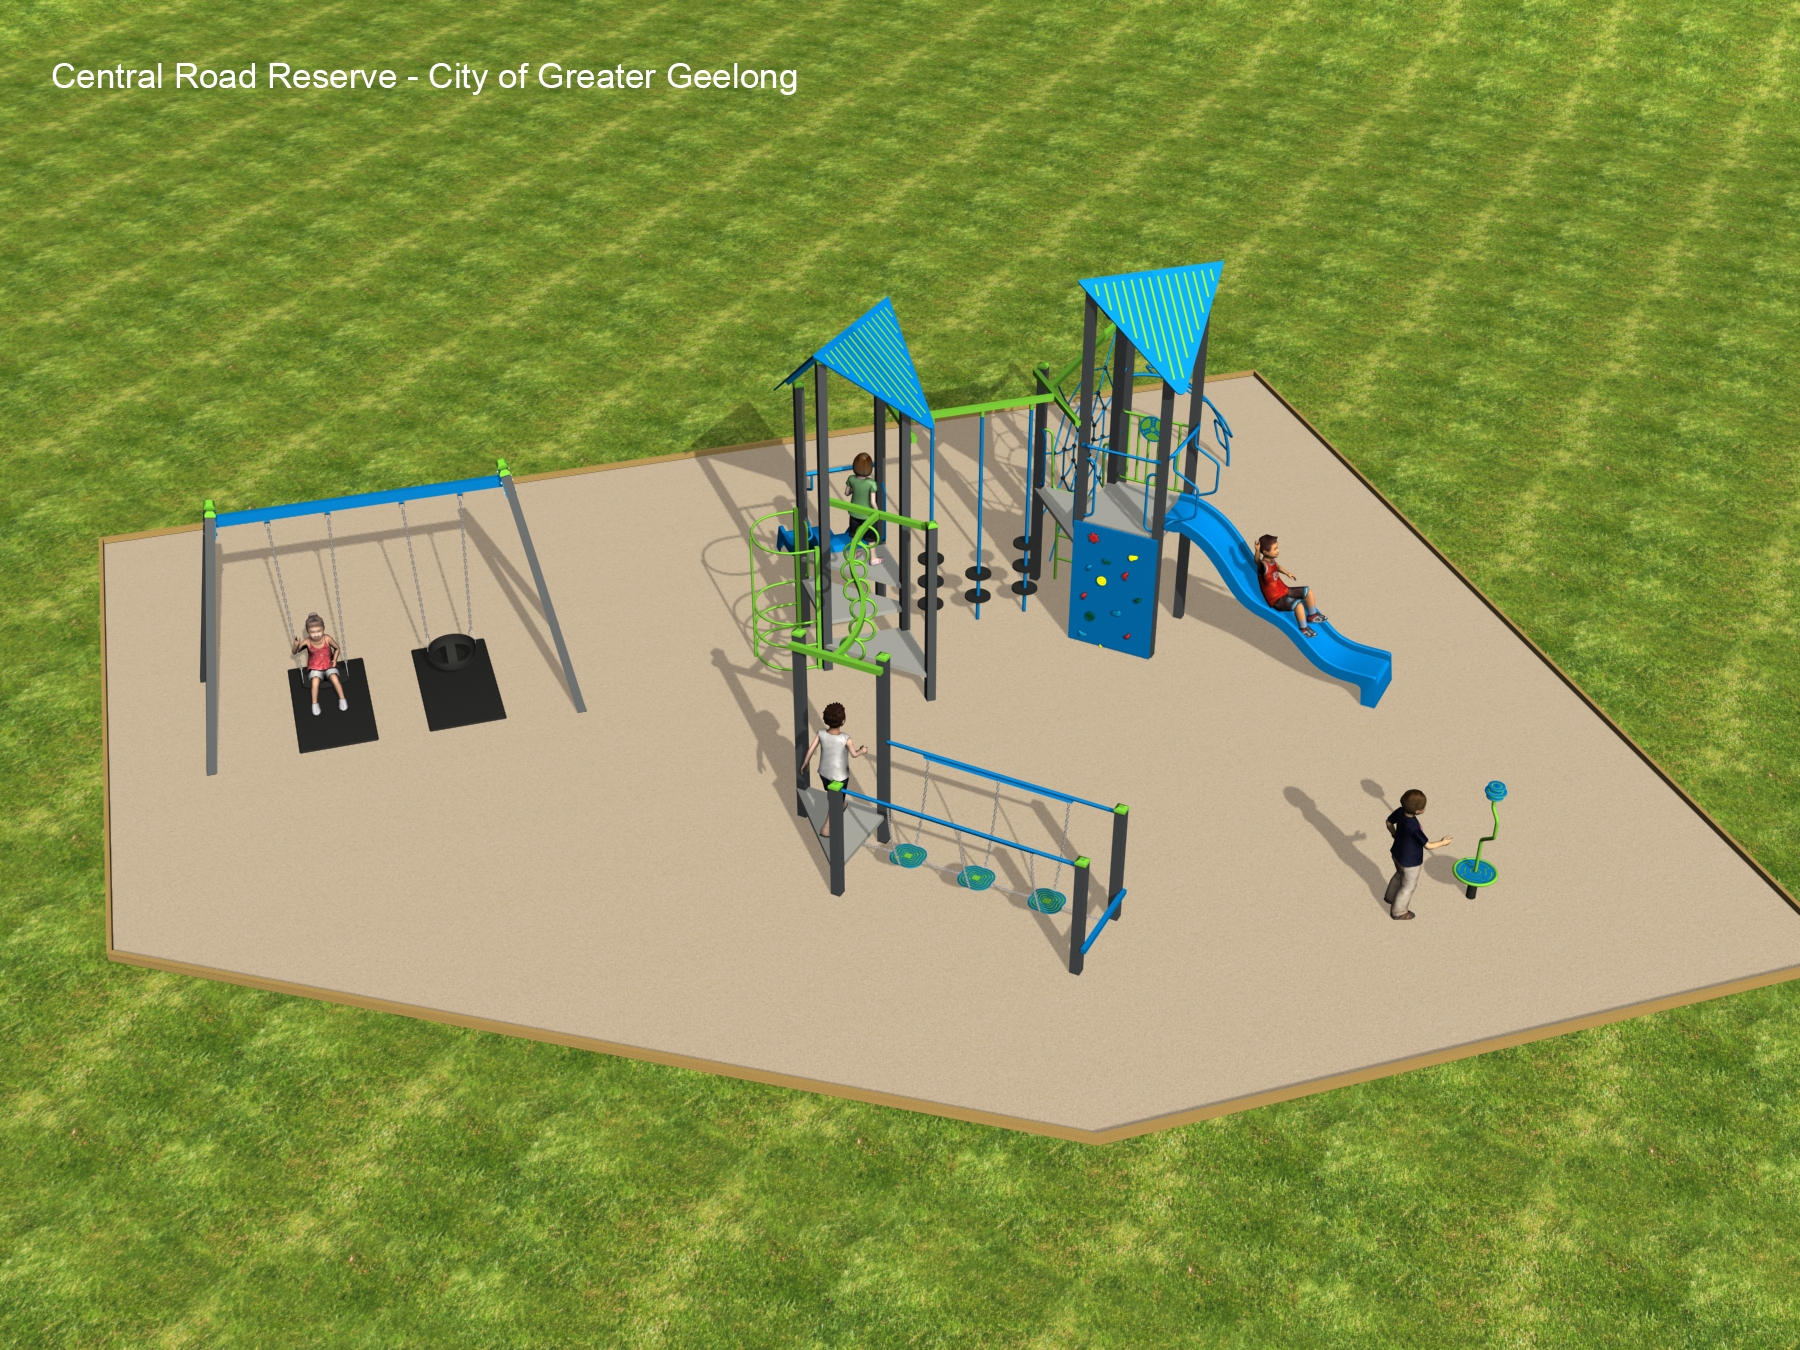 Central Road Reserve - proposed playground